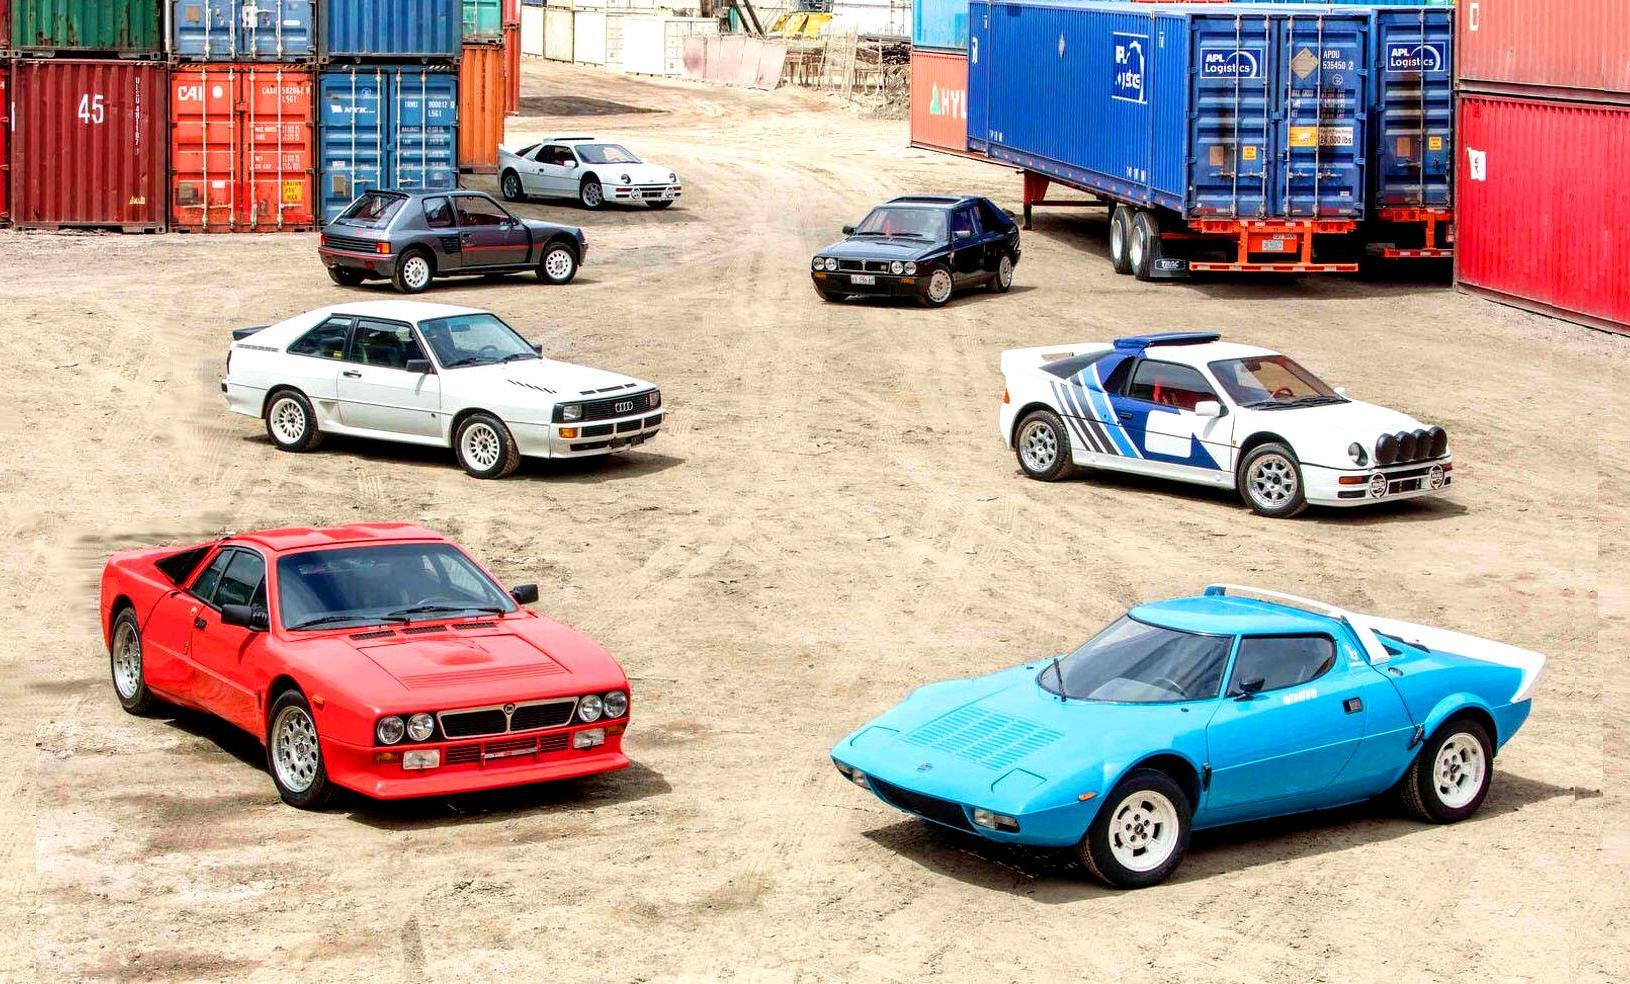 For Sale: Jaw-dropping selection of Group B rally road cars ...